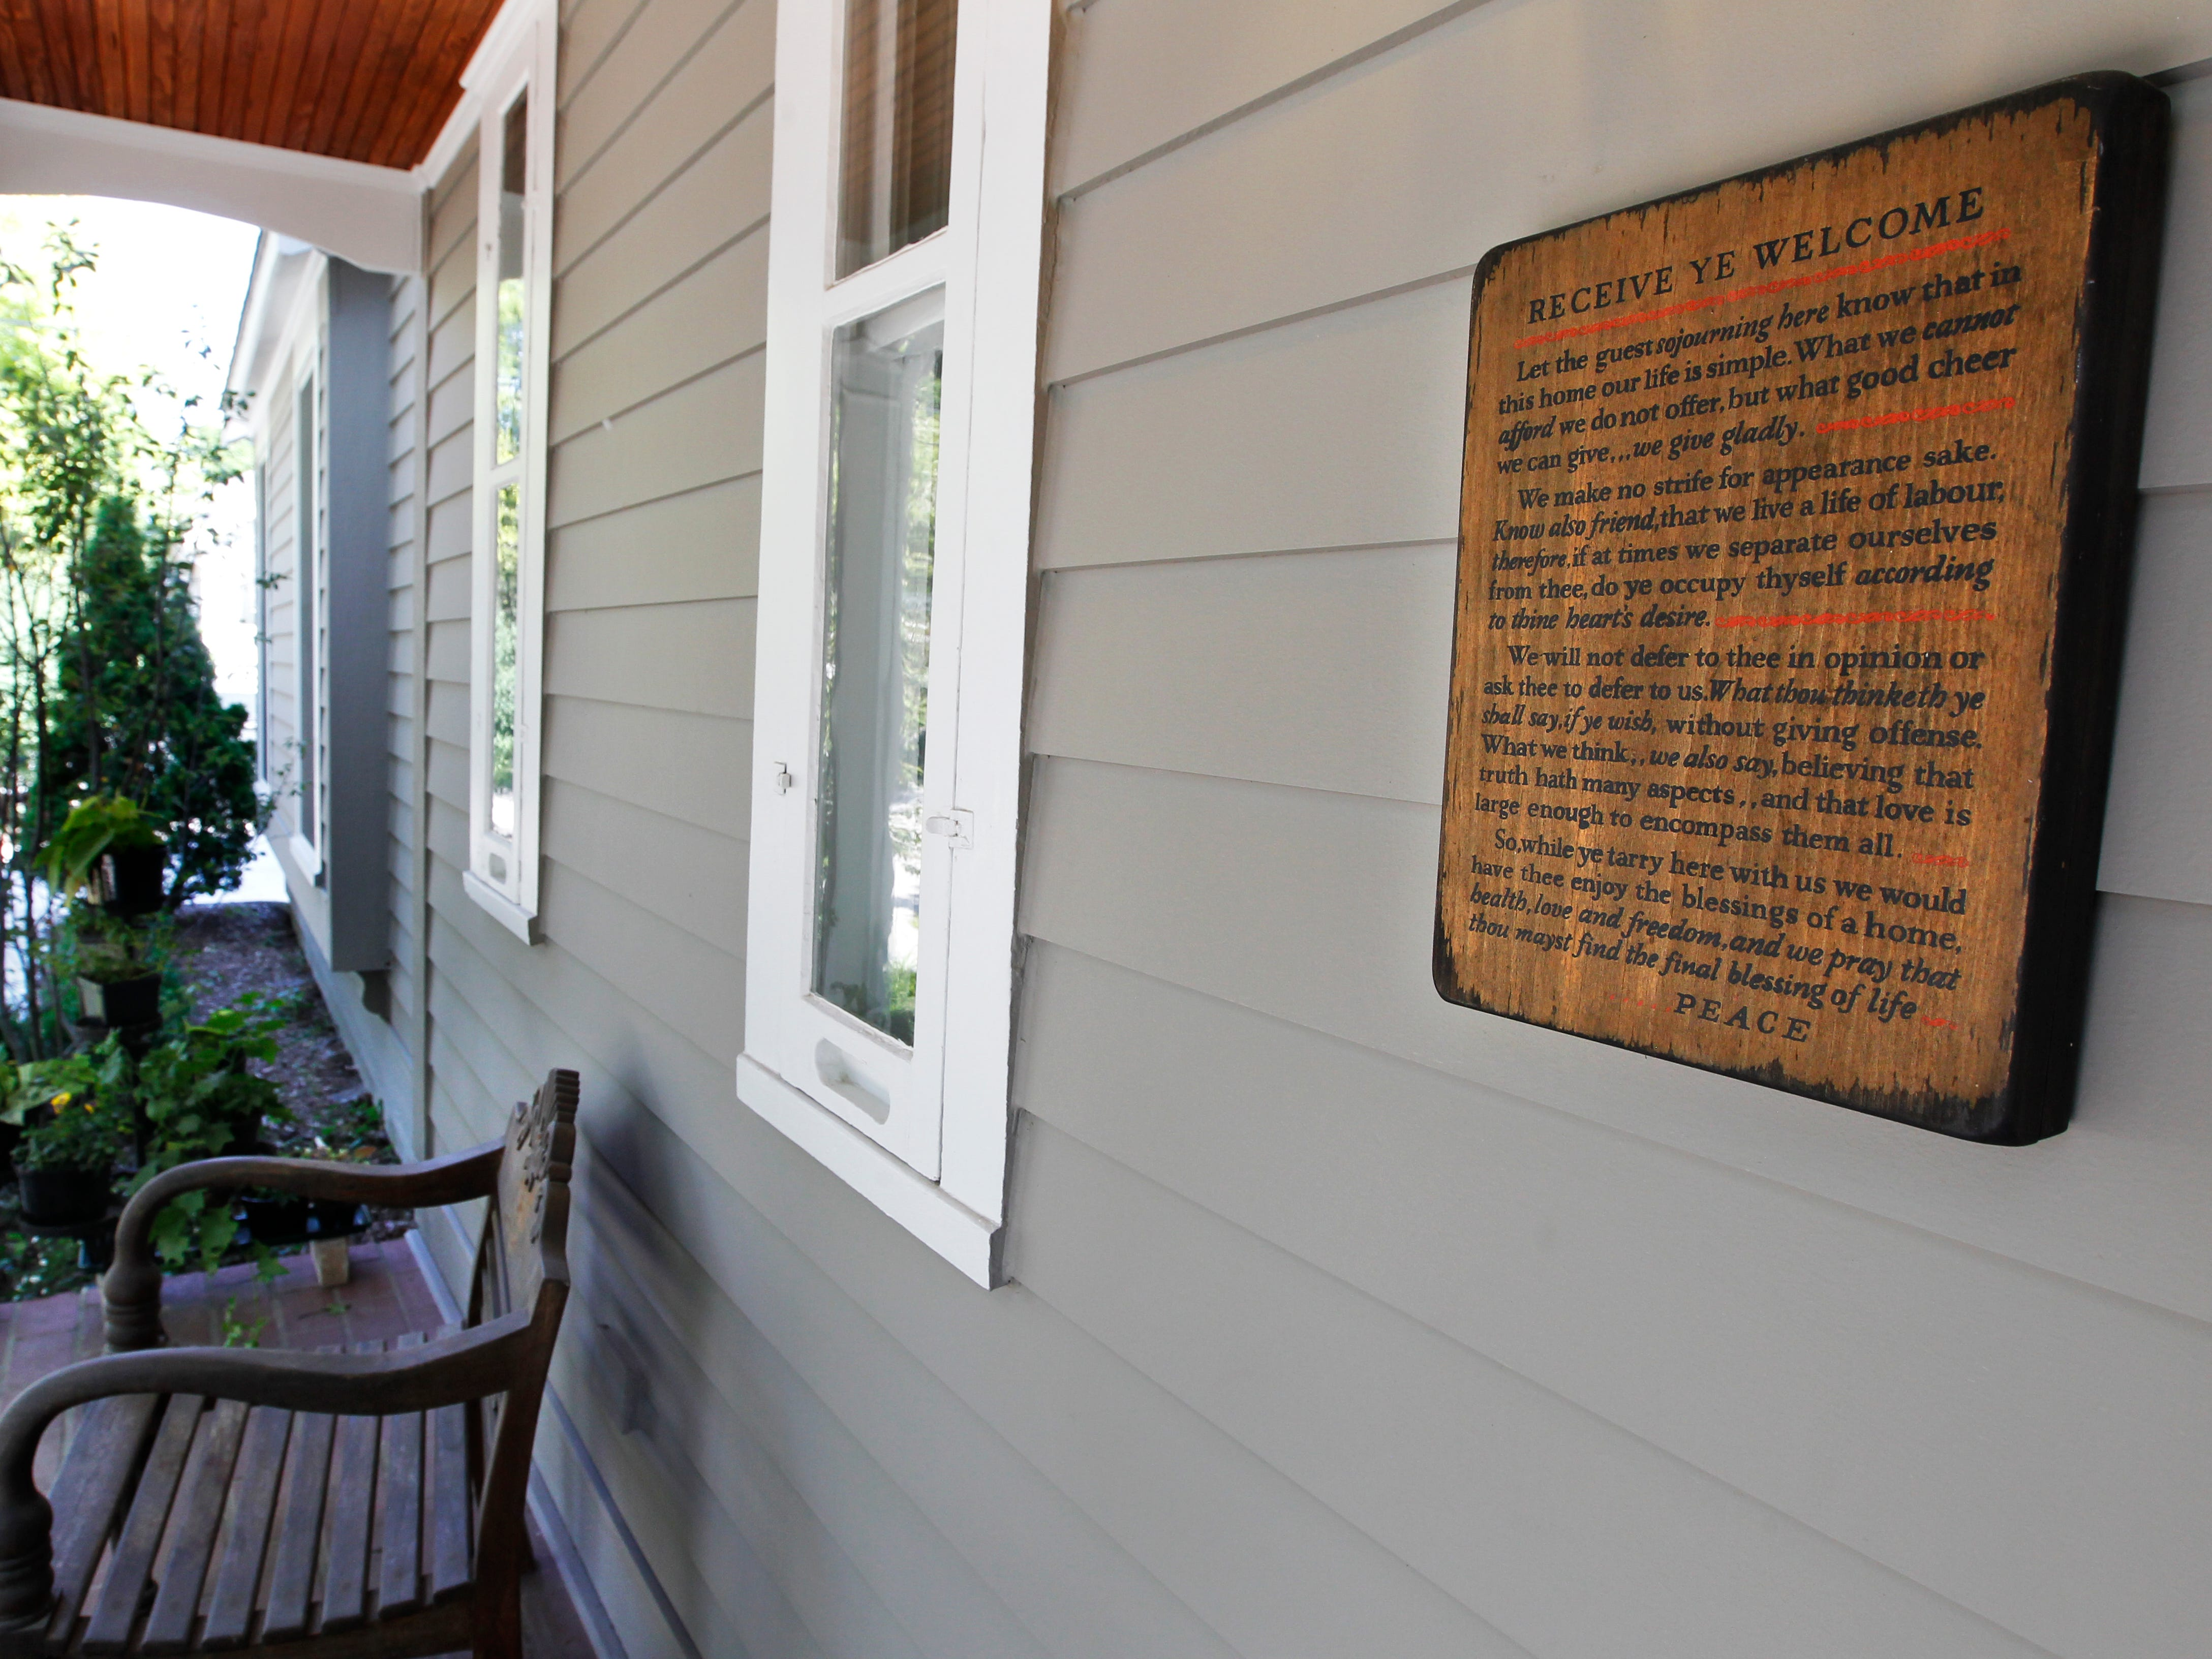 A sign on the front porch welcomes visitors.